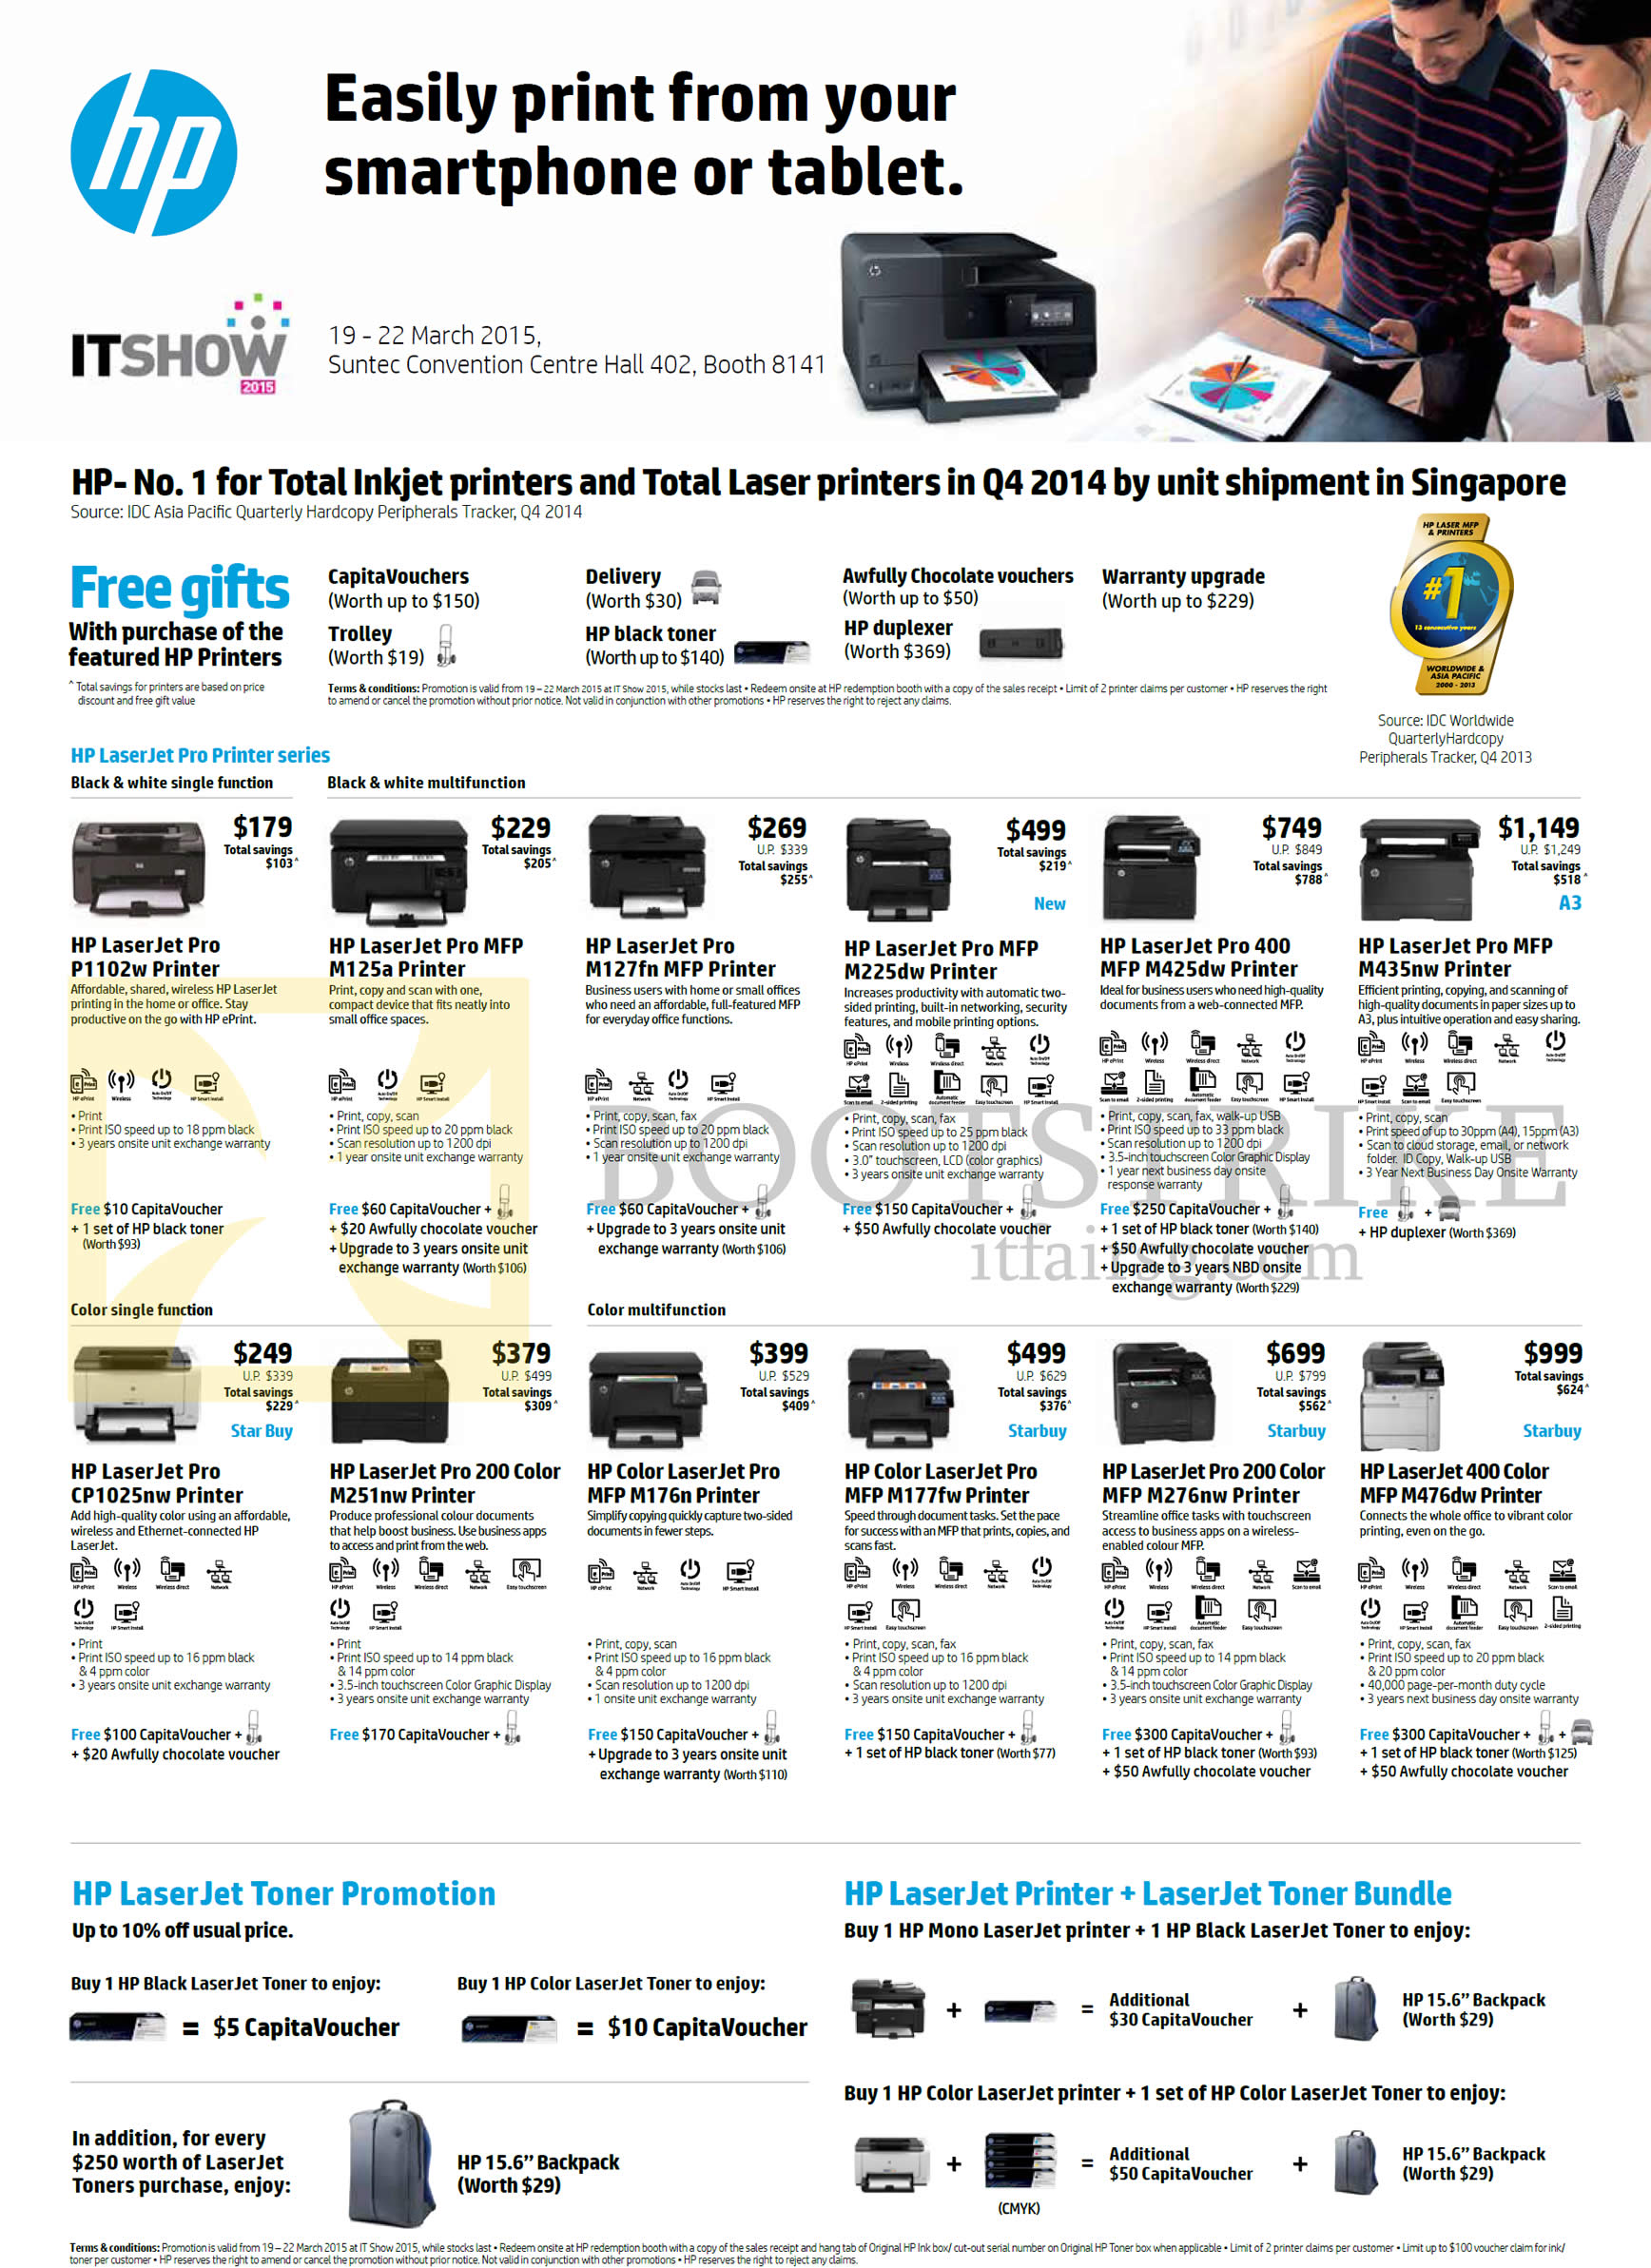 IT SHOW 2015 price list image brochure of HP Printers LaserJet Pro P1102W, M125a, M127fn, M225dw, M425dw, M435nw, CP1025nw, M251nw, M176n, M177fw, M276nw, M476dw